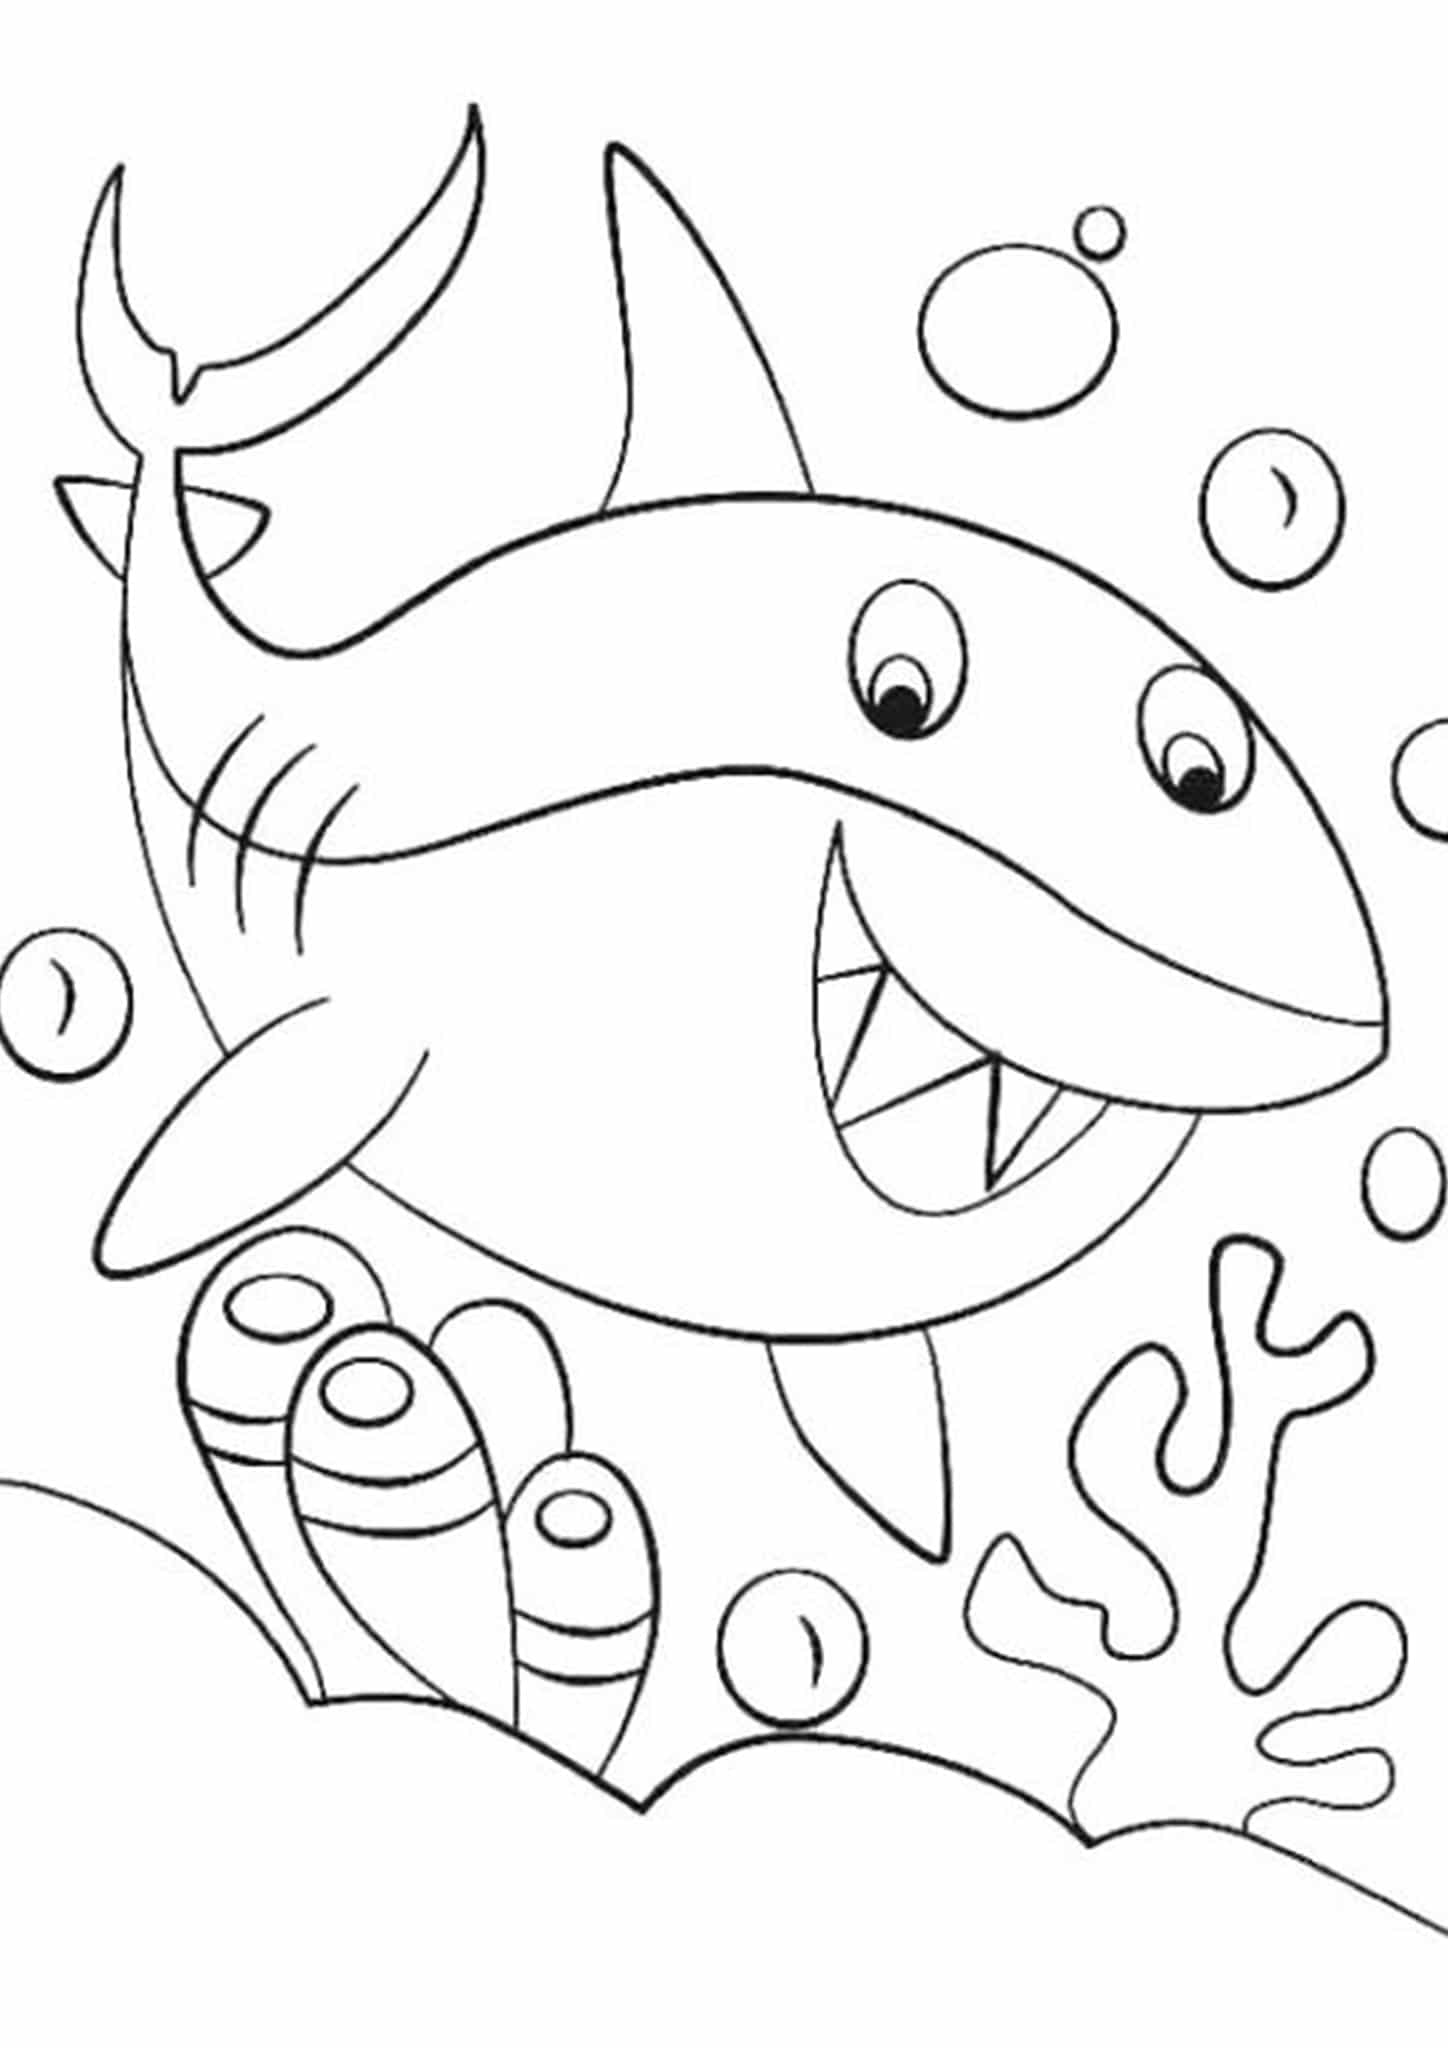 shark color sheet free printable shark coloring pages for kids animal place shark sheet color